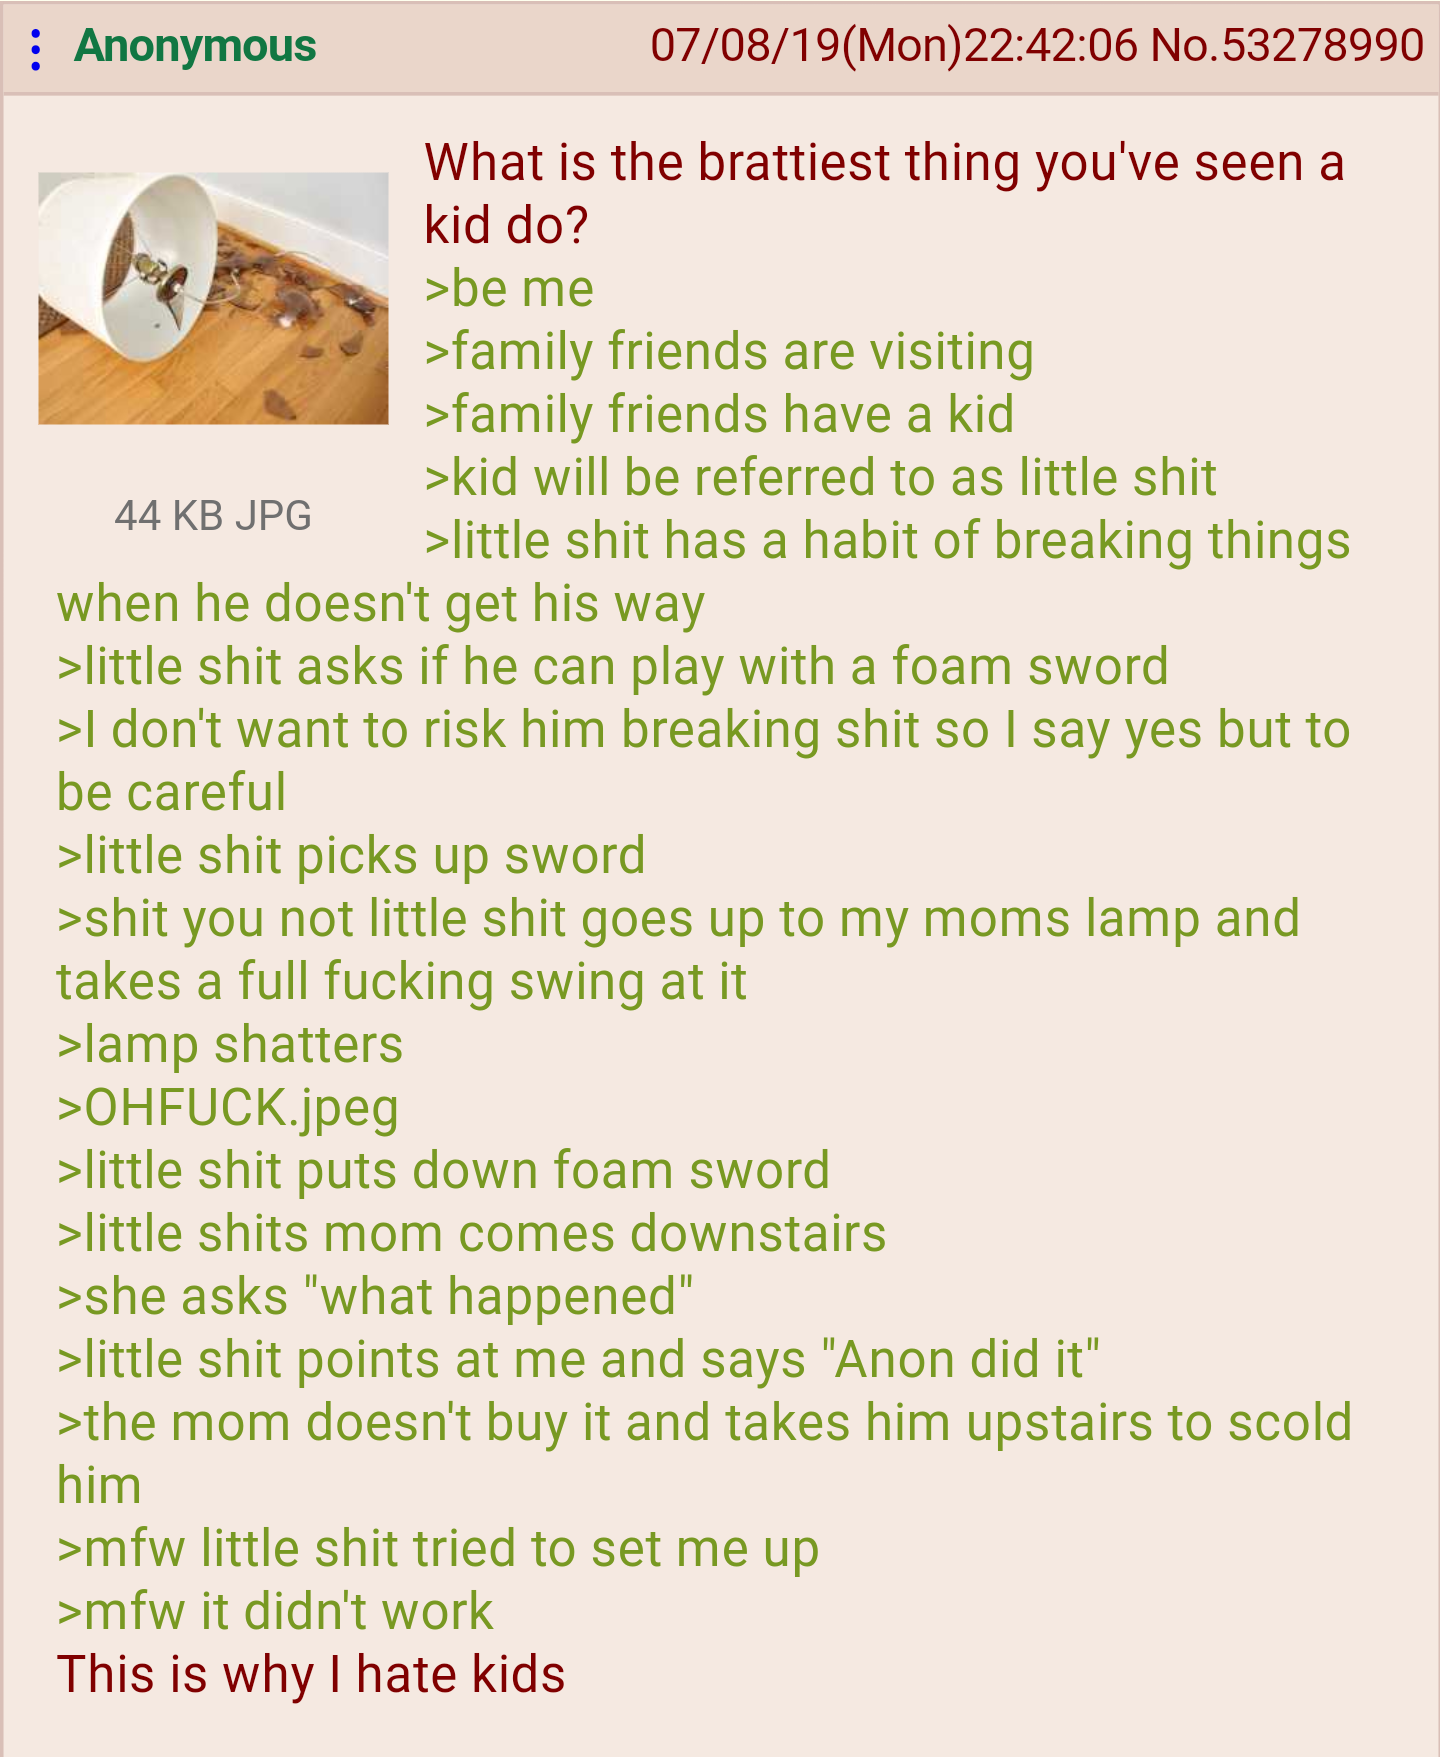 Anon and the little shit